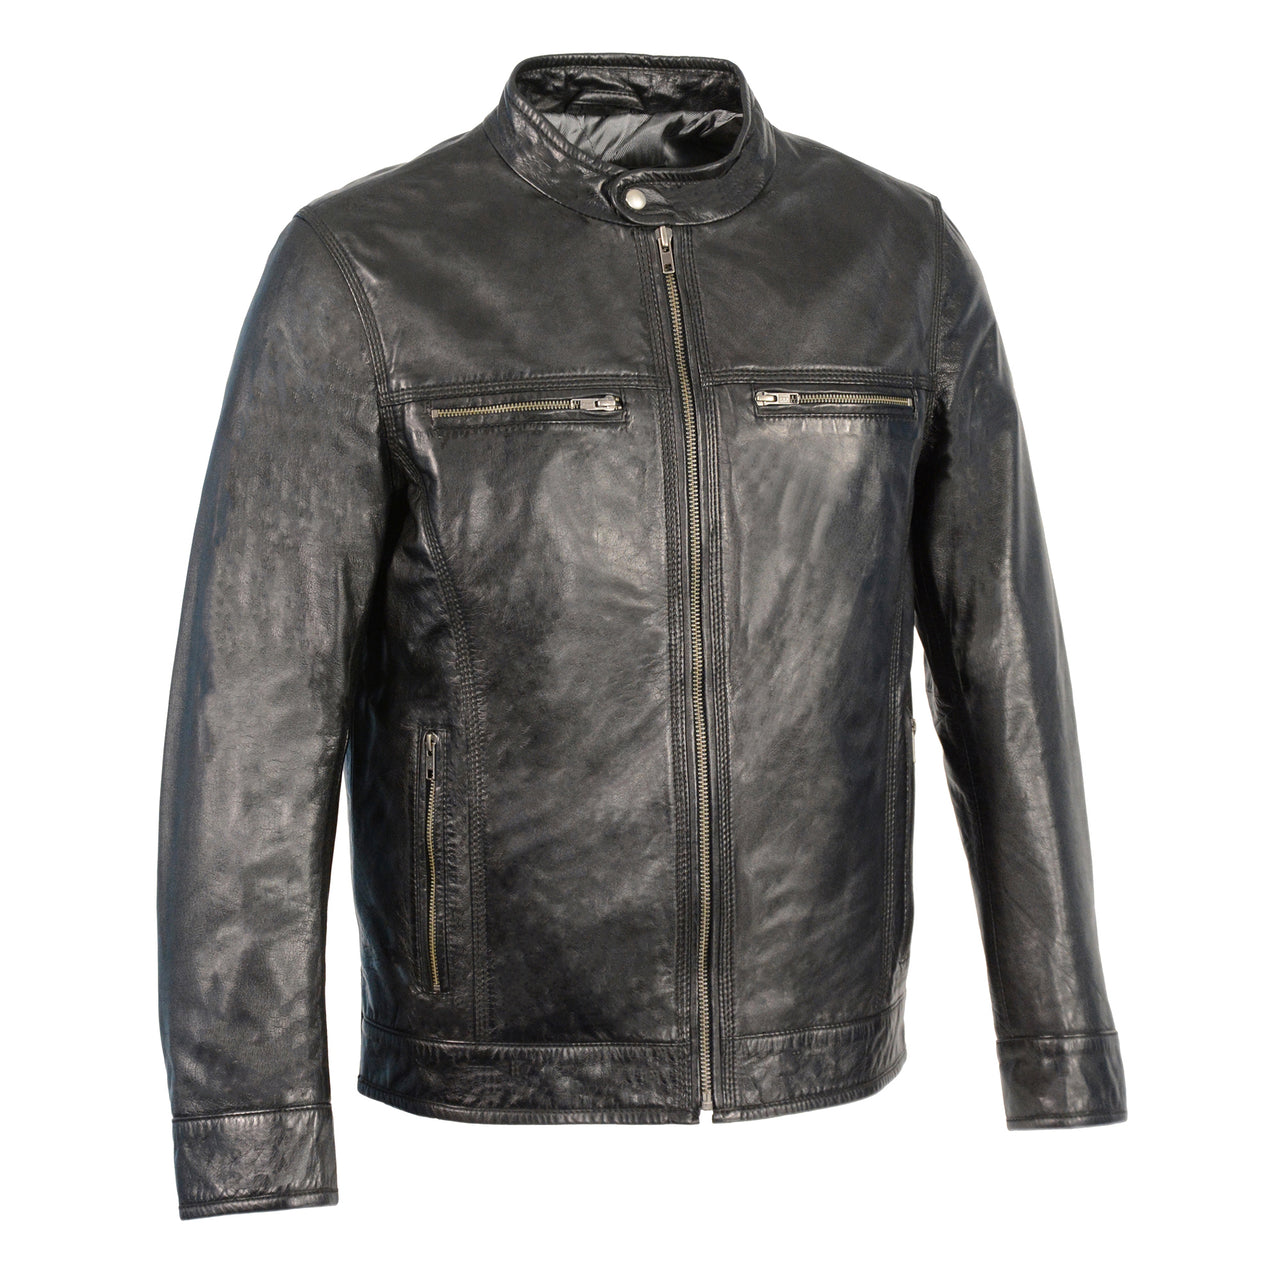 Men's Classic Moto Leather Jacket w/ Zipper Front - HighwayLeather